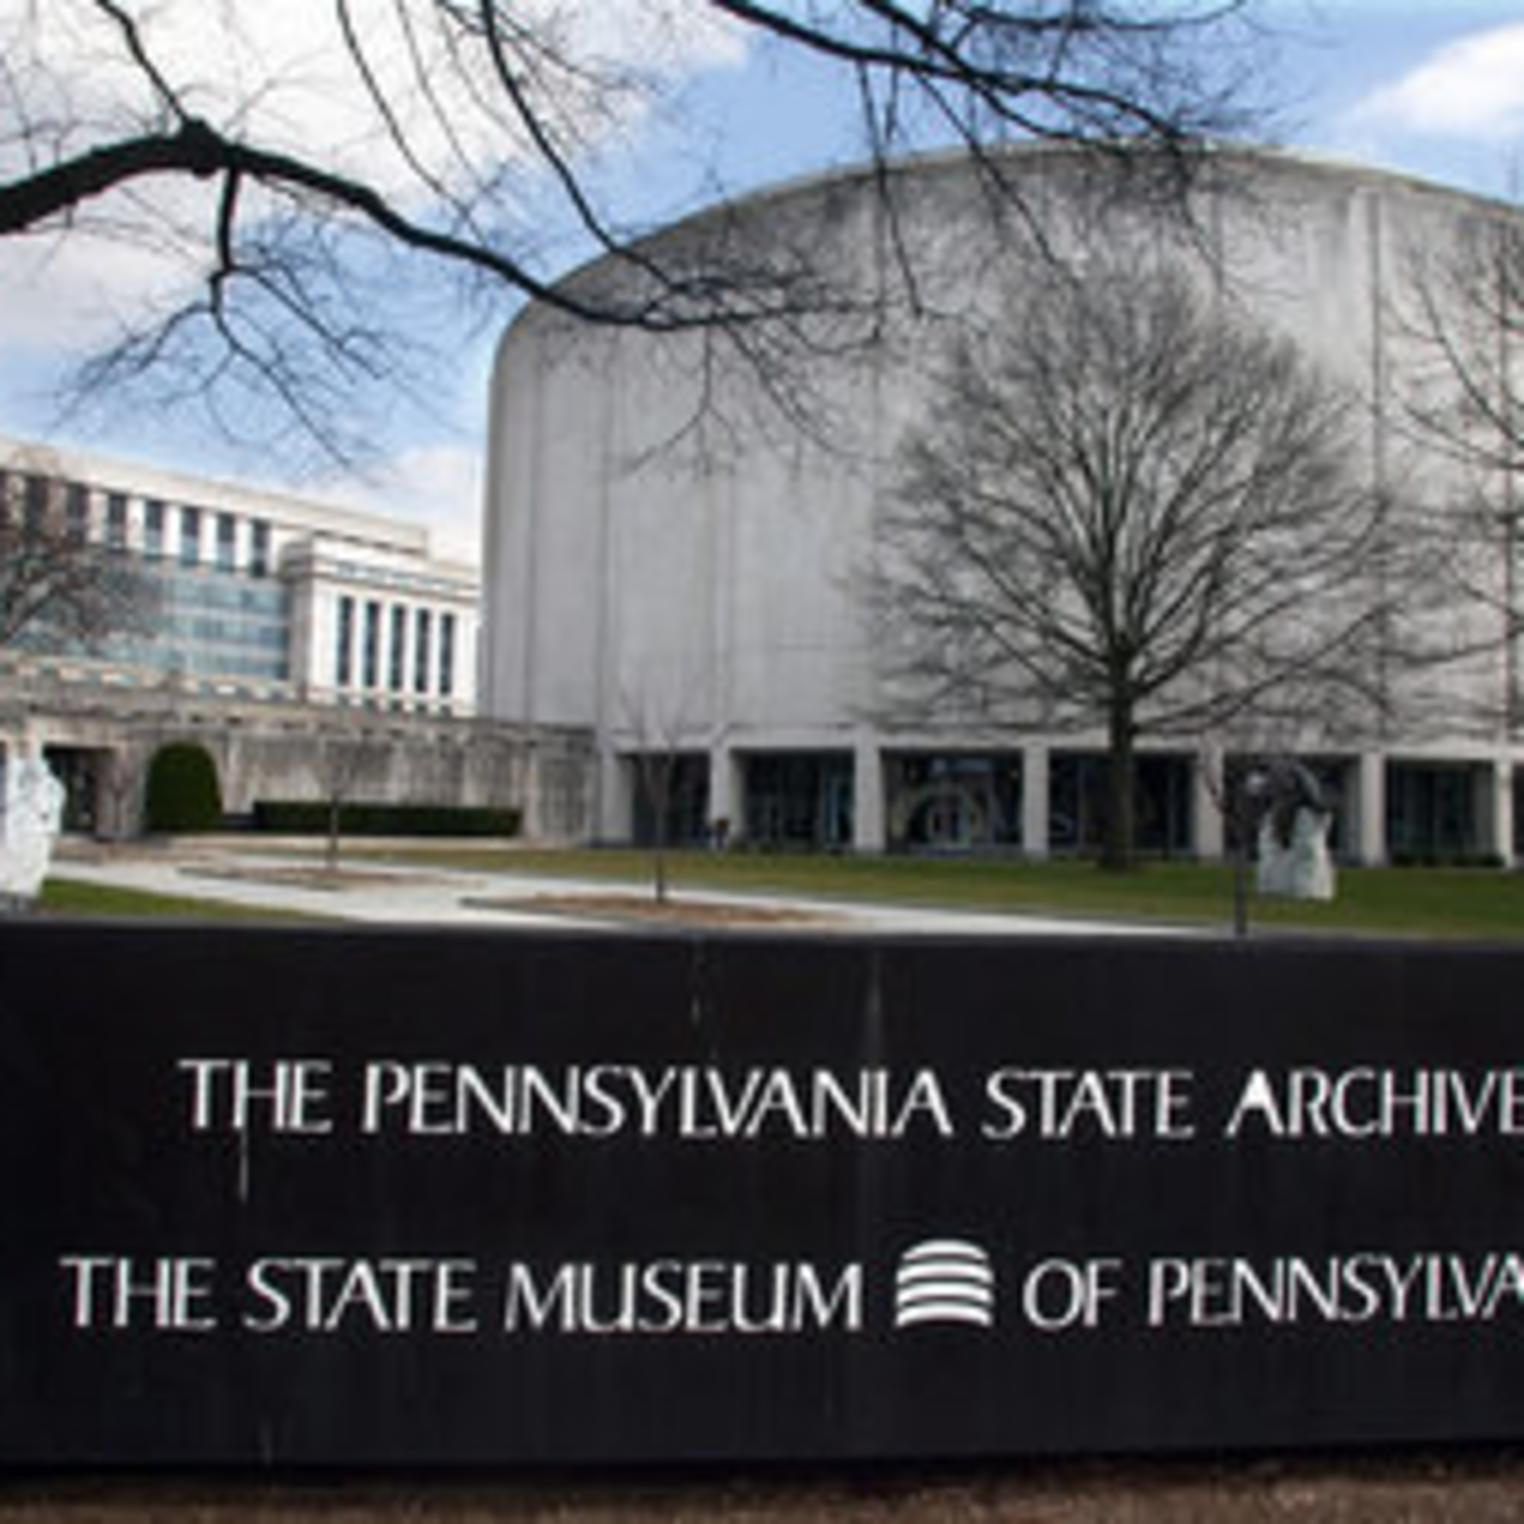 Pennsylvania State Archives